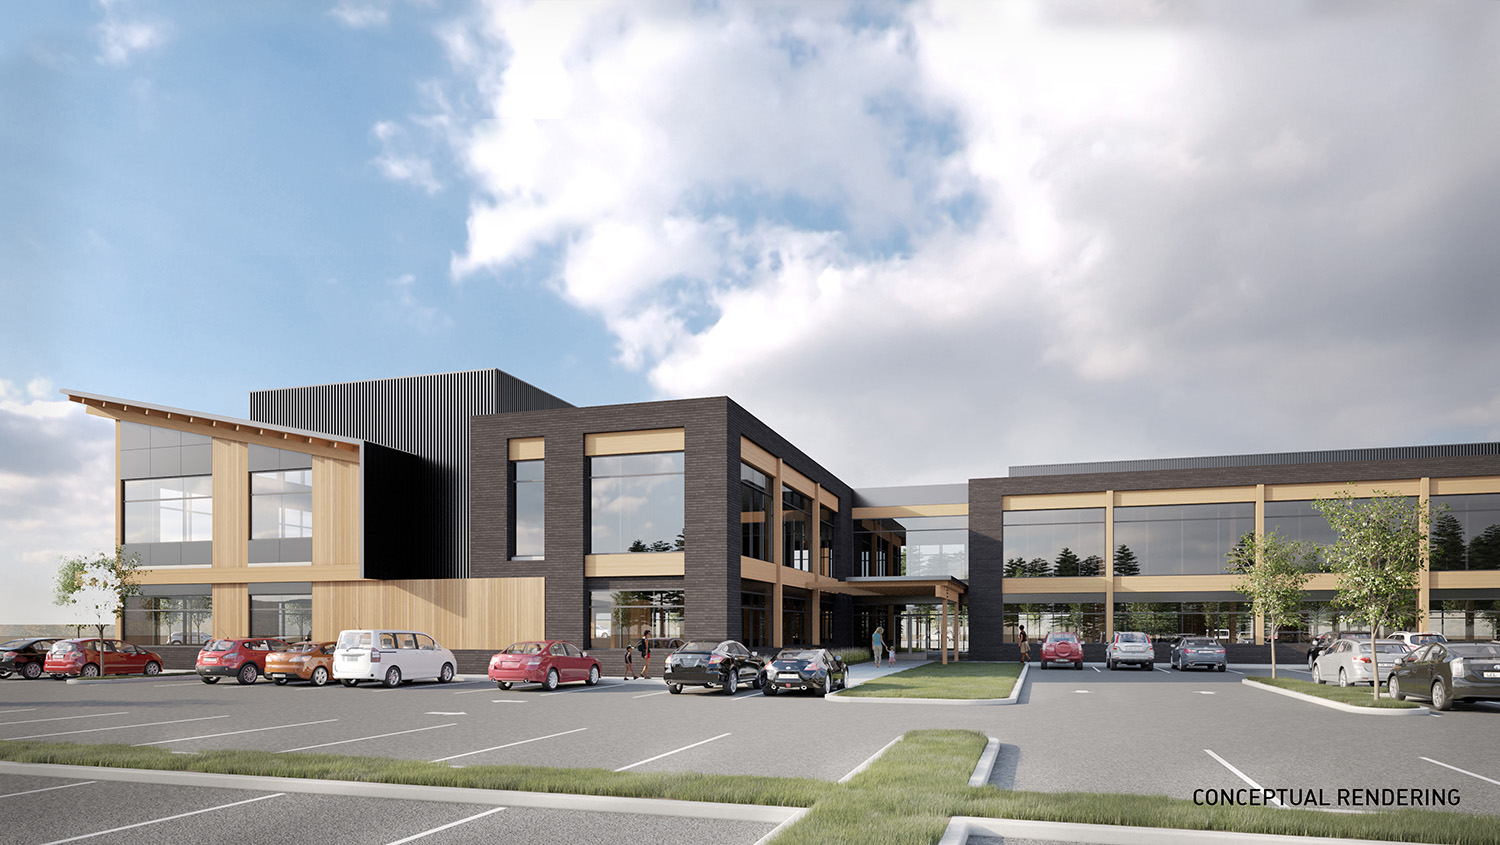 Conceptiual Rendering of proposed DHS office at the TimberMill Shores development. (Submitted)